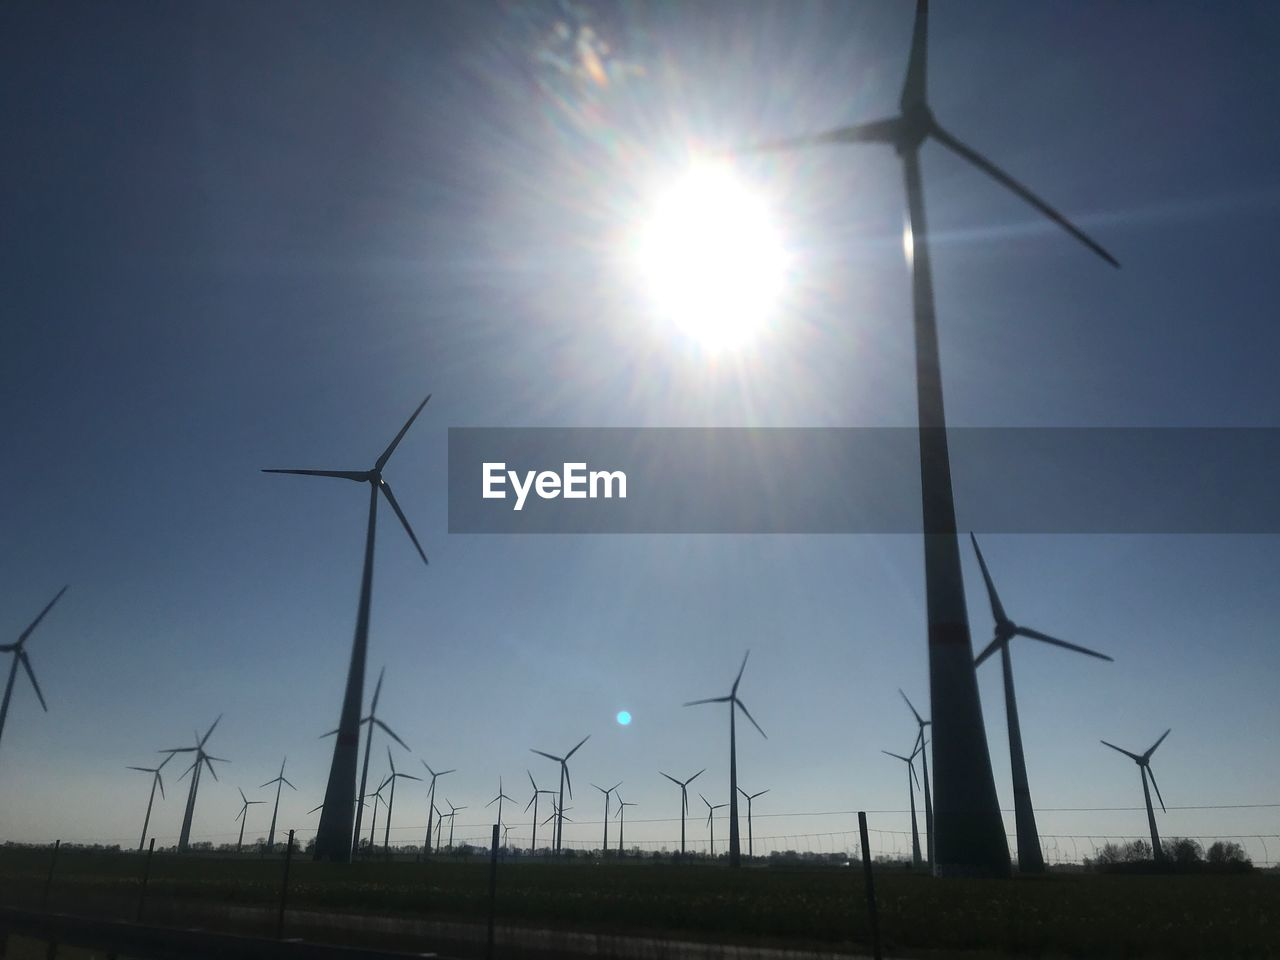 fuel and power generation, renewable energy, environmental conservation, wind turbine, alternative energy, sun, wind power, turbine, sky, environment, sunlight, nature, low angle view, lens flare, sunbeam, field, beauty in nature, sunny, land, no people, outdoors, bright, sustainable resources, brightly lit